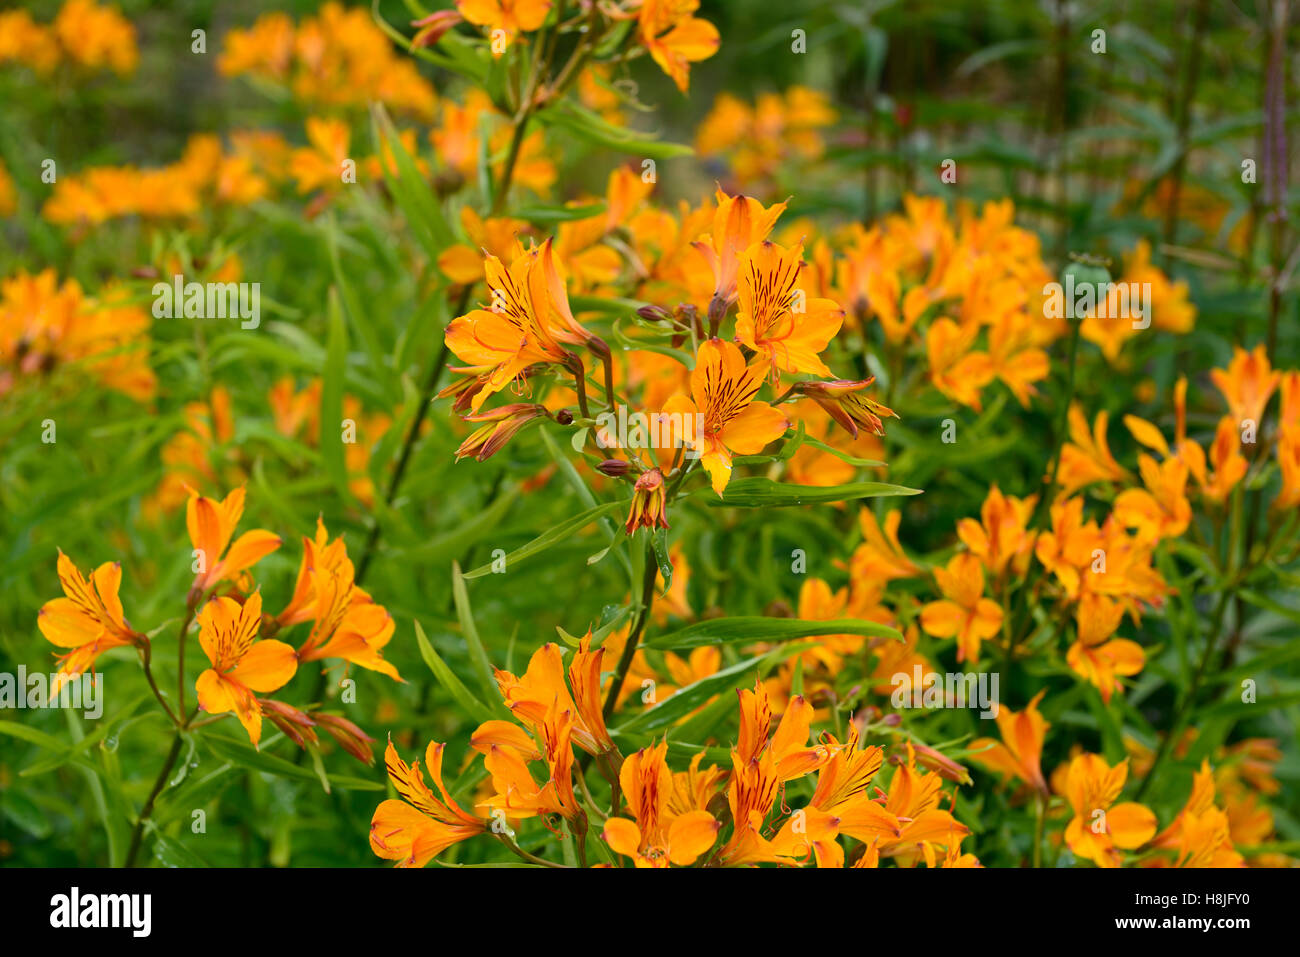 Orange alstroemeria stock photos orange alstroemeria stock images alstroemeria orange glory peruvian lily orange flowers flowering perennial rm floral stock image mightylinksfo